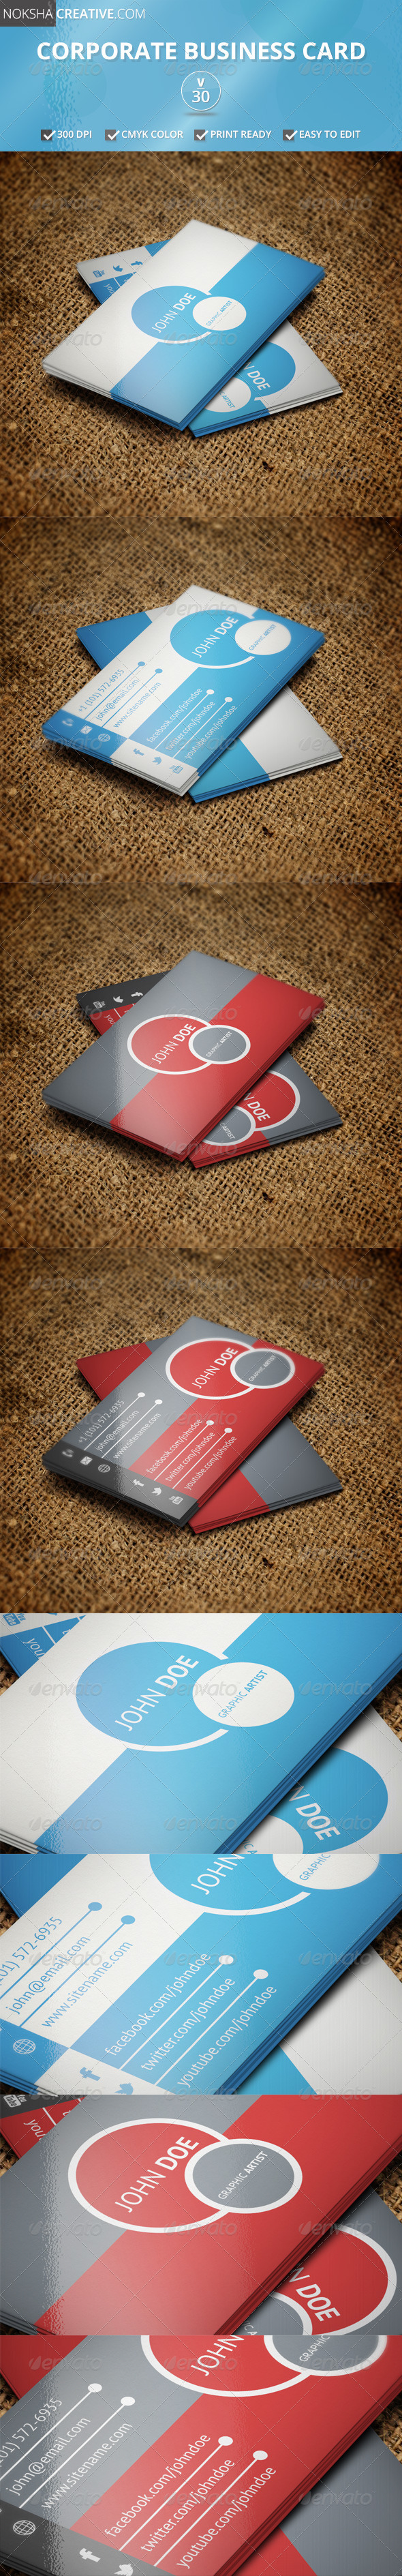 GraphicRiver Corporate Business Card V 30 5462133